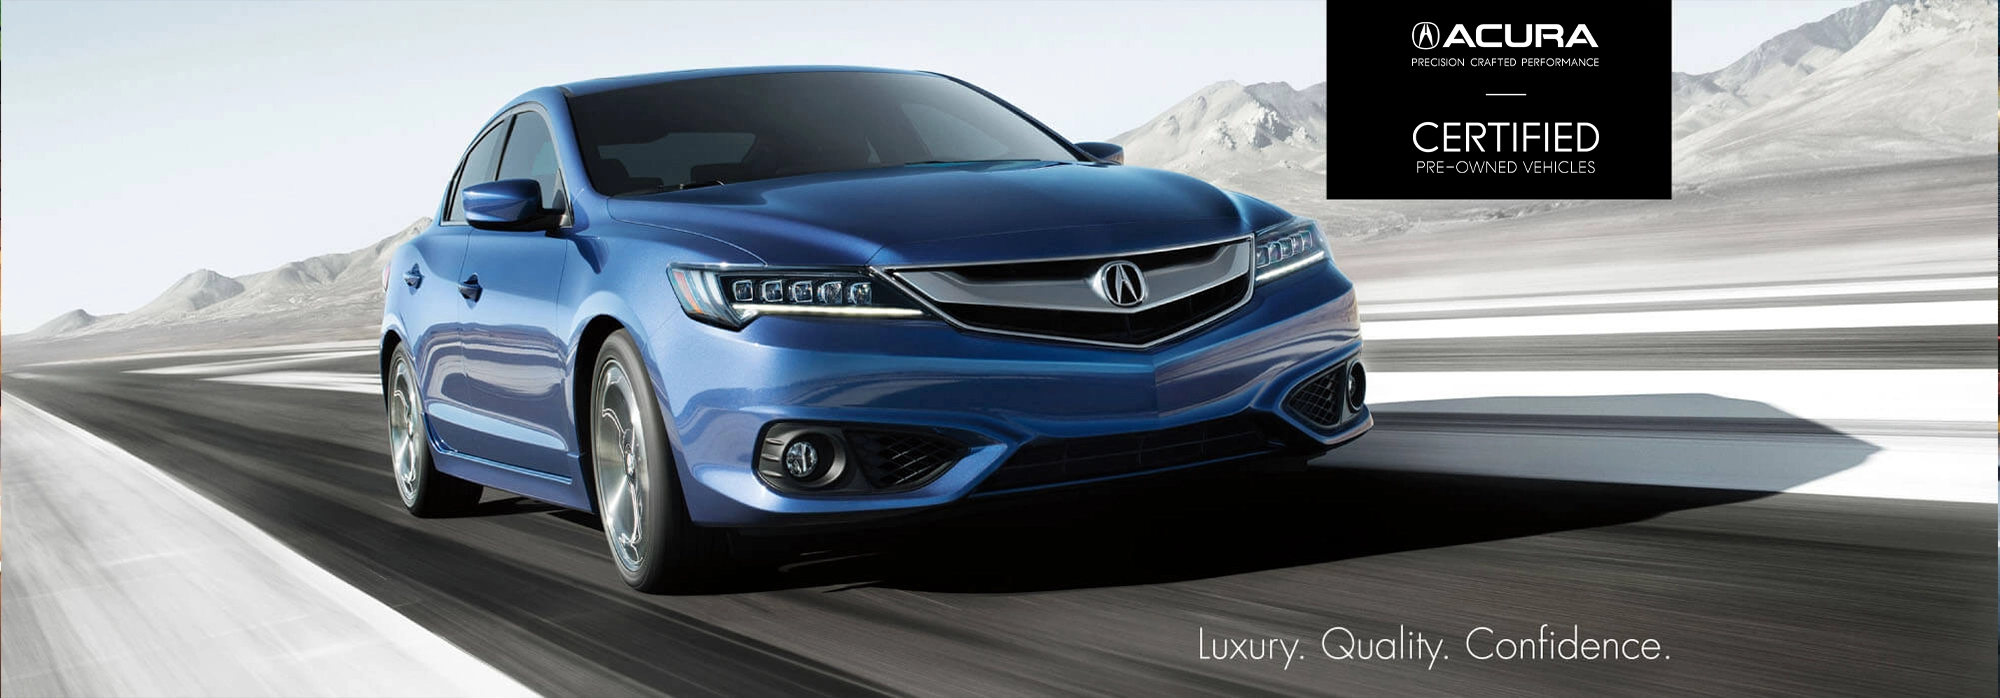 acura certified pre owned benefits